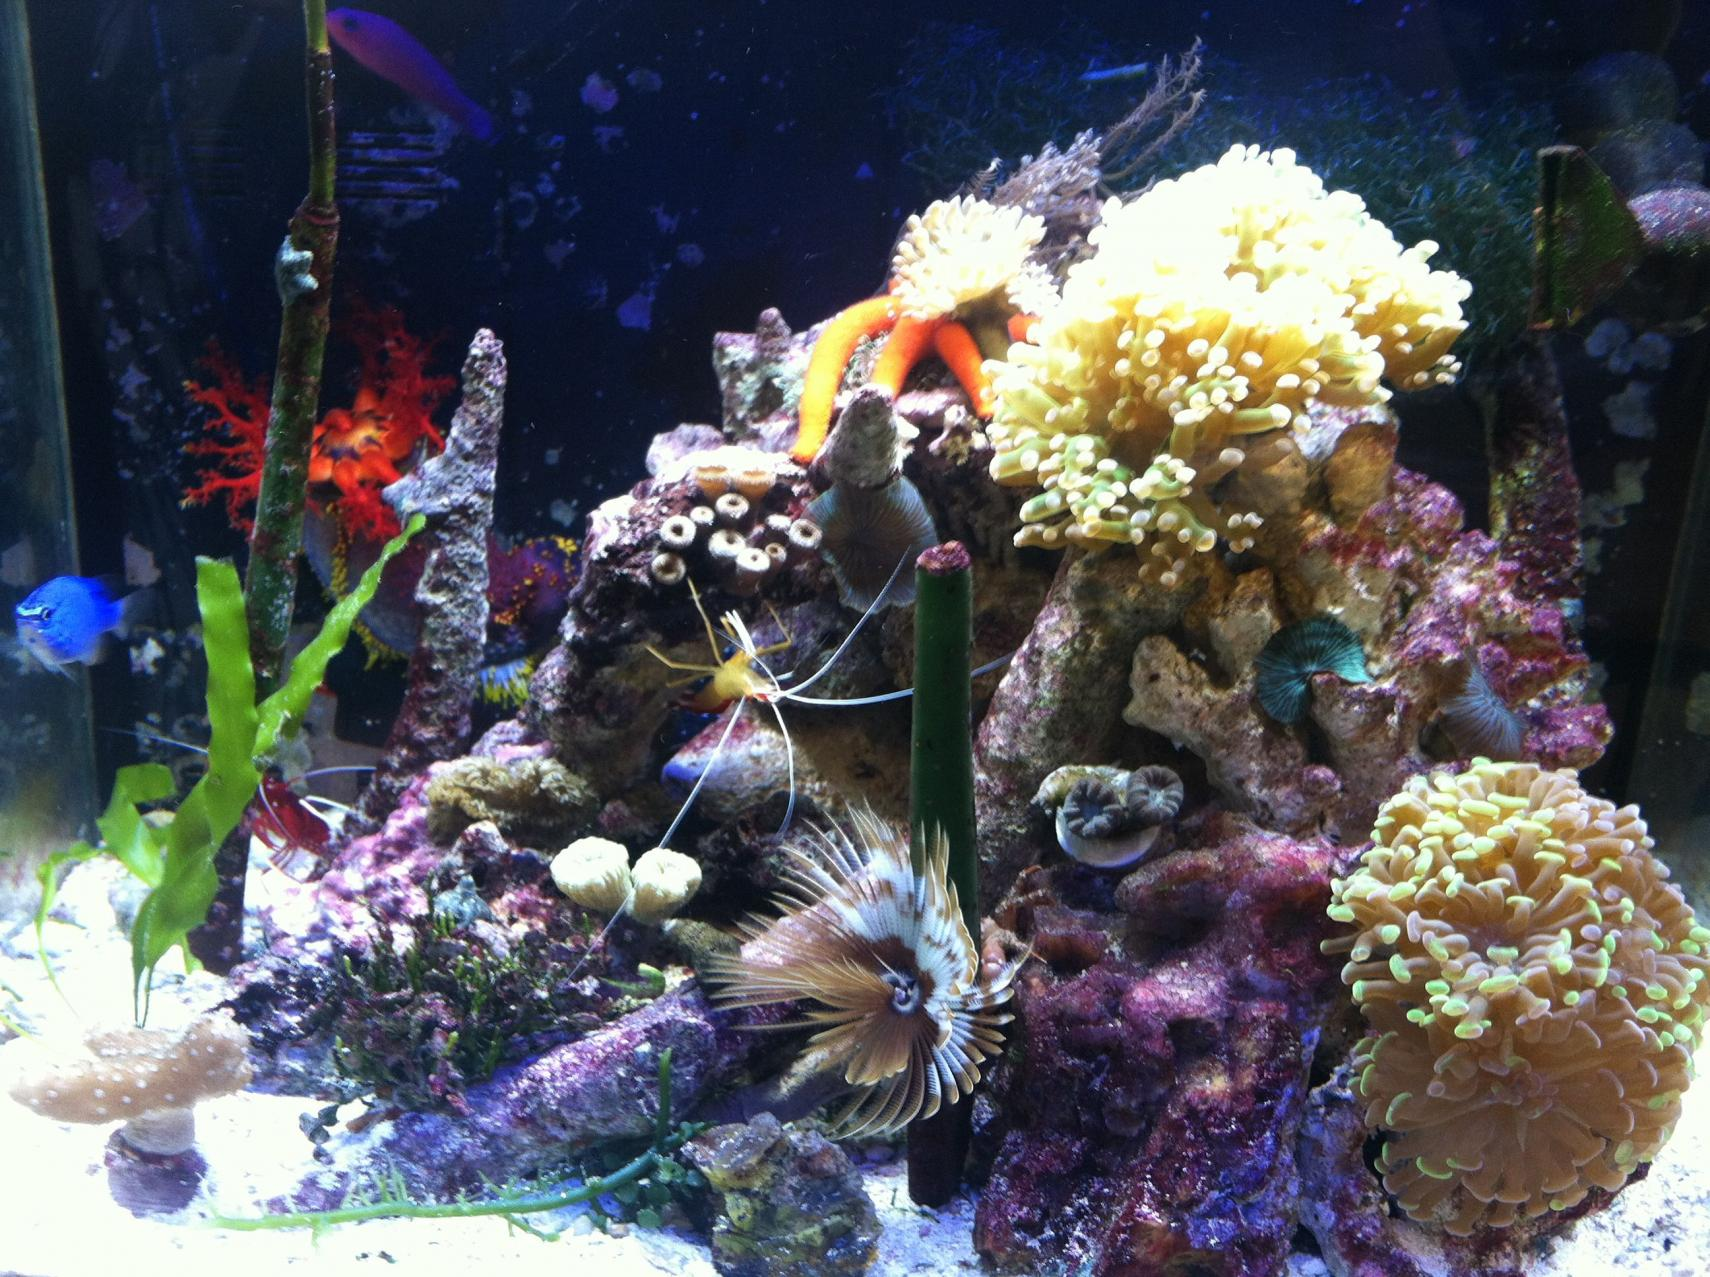 Fish aquarium just dial - Nano Reef Testimonial From Daniel Bisso